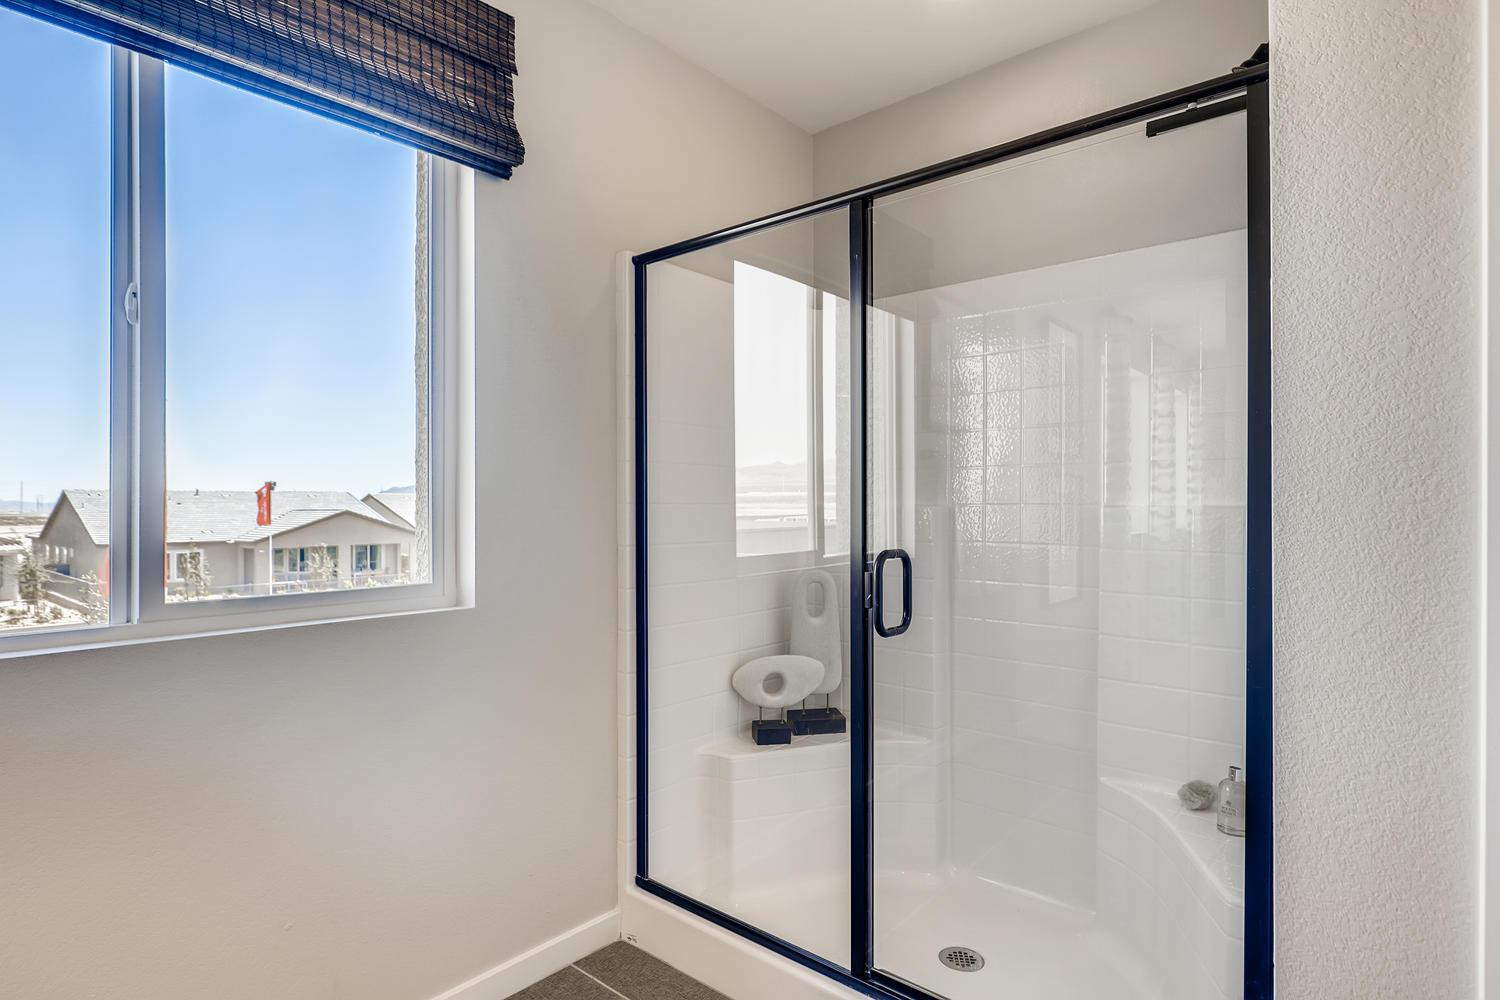 Bathroom featured in the 30 - Magnolia By Taylor Morrison in Las Vegas, NV